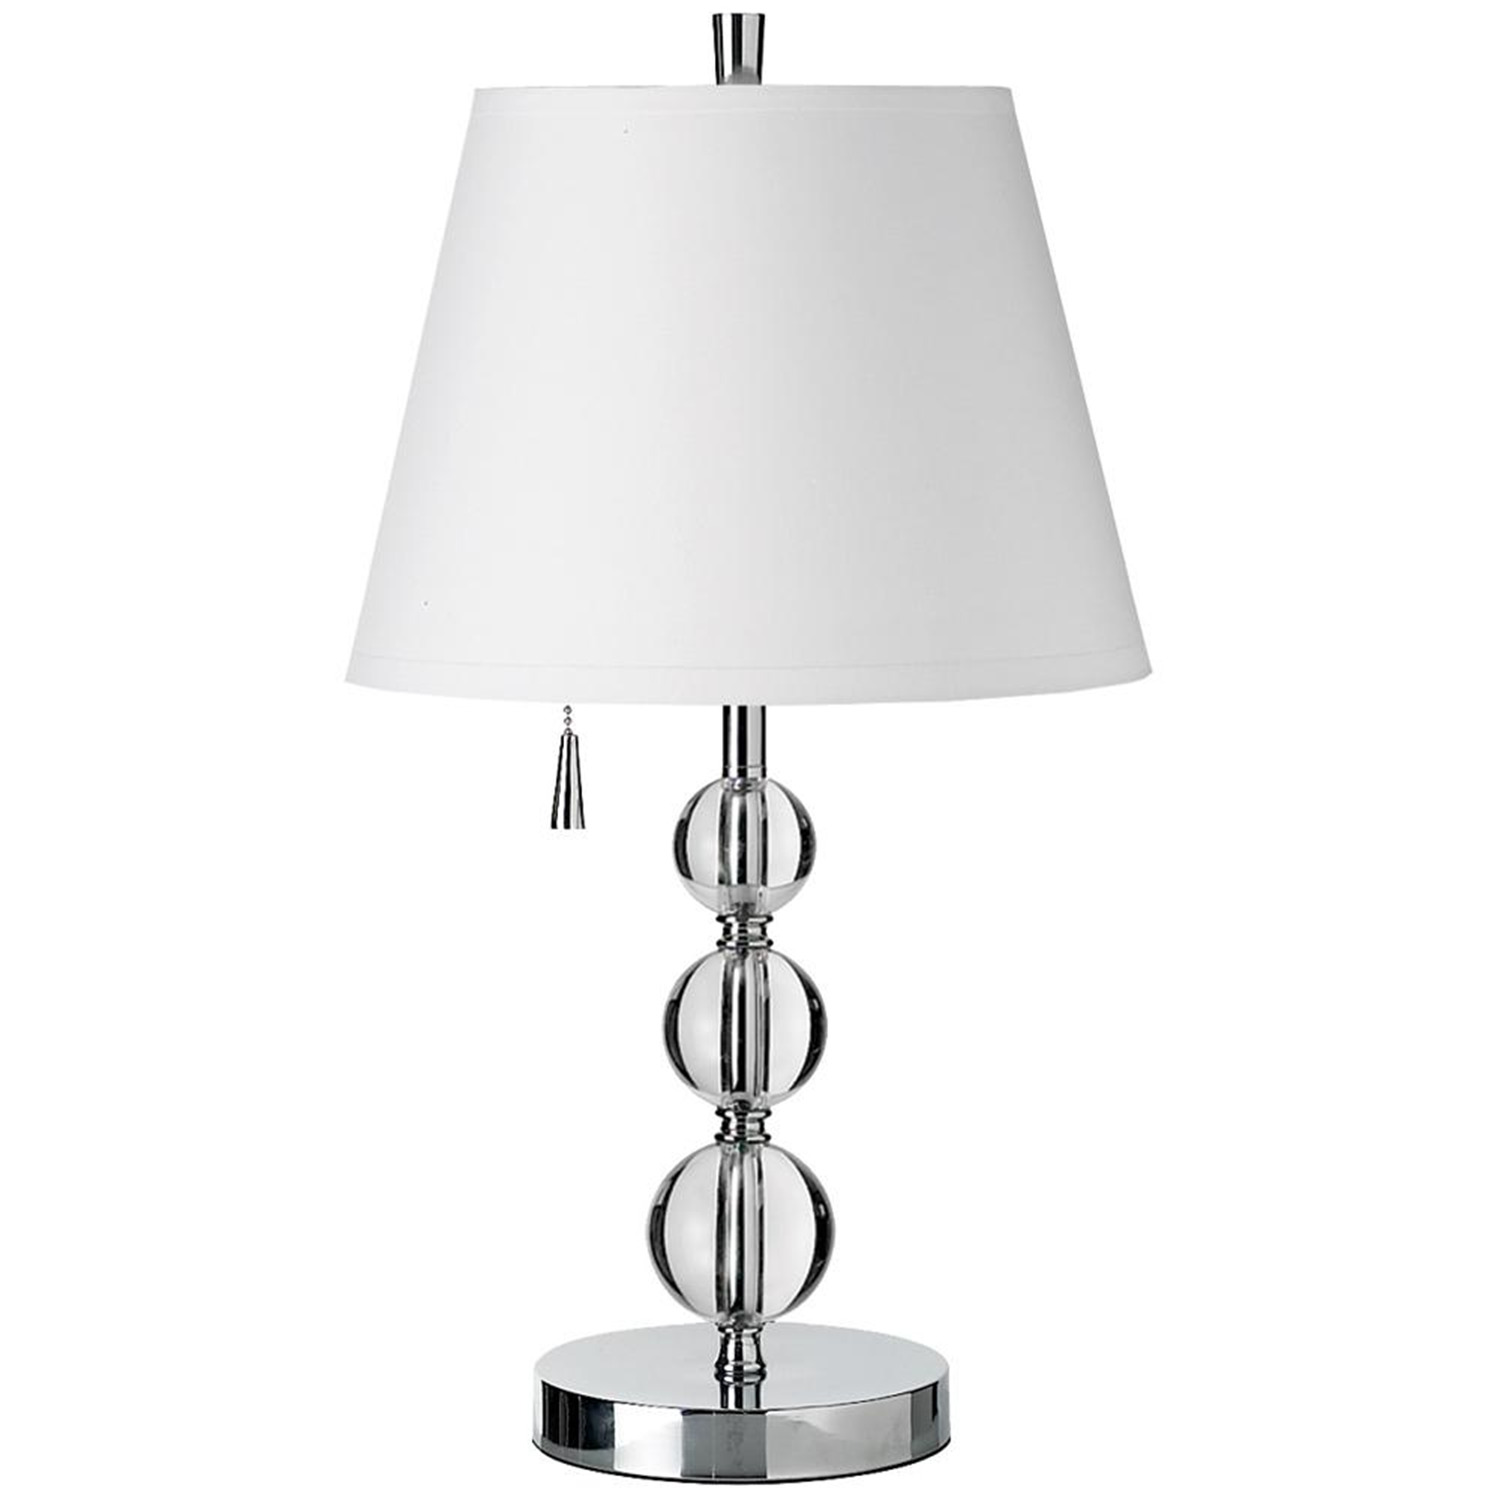 dainolite three crystal balls table lamp by oj commerce 220. Black Bedroom Furniture Sets. Home Design Ideas